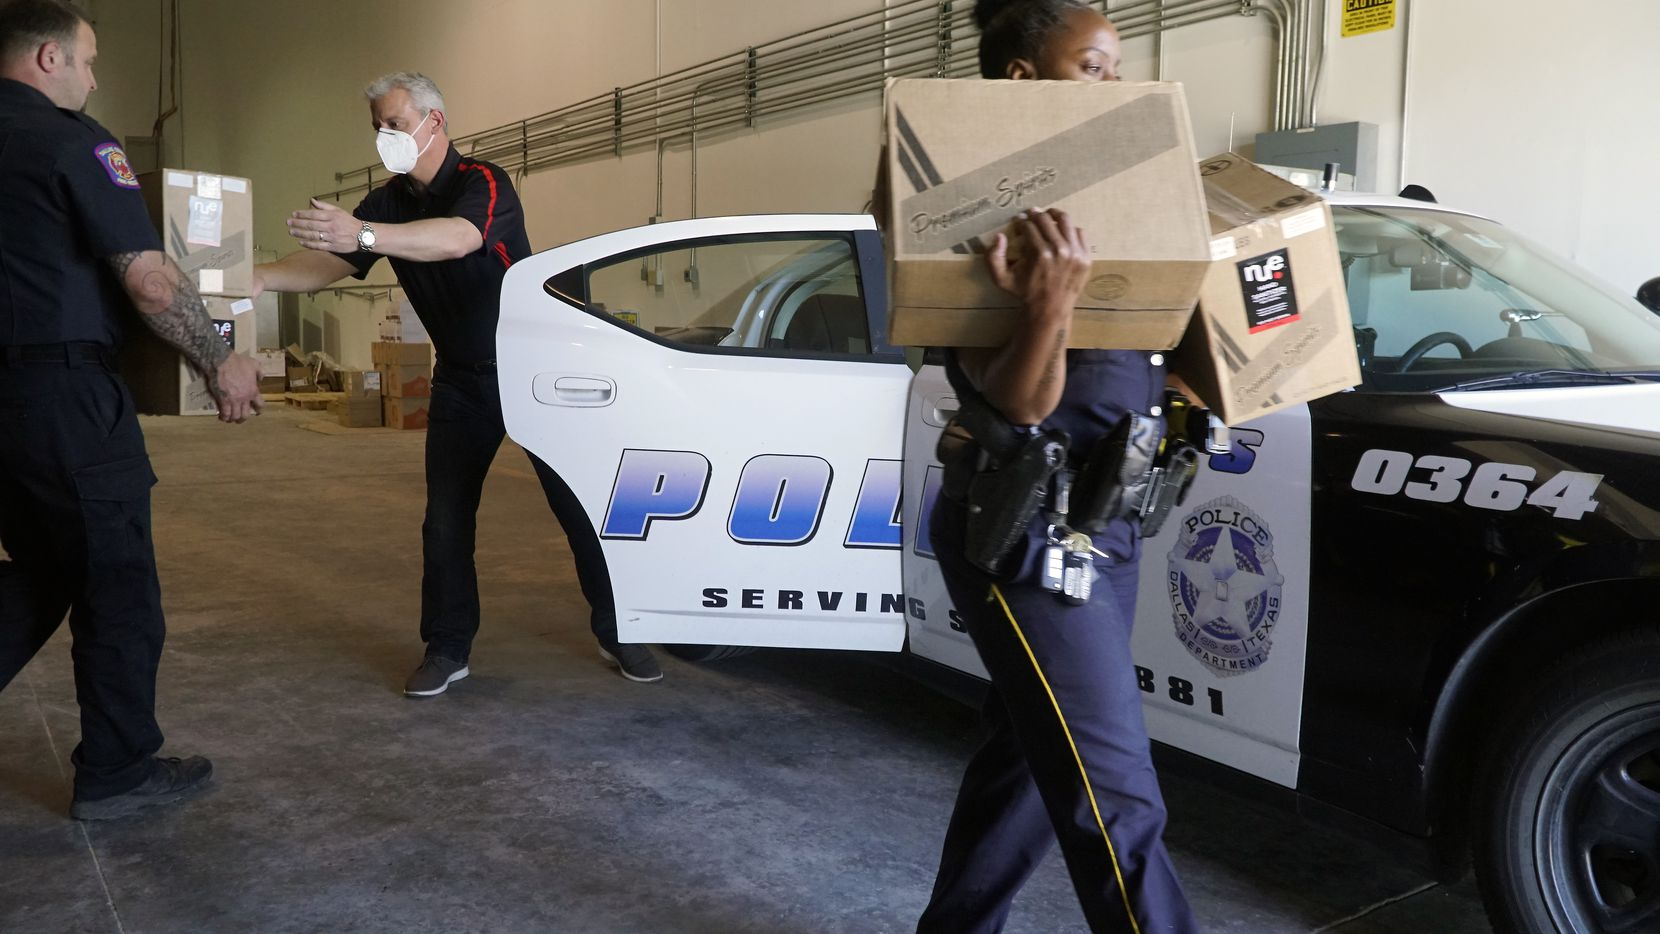 Southwest Spirits CEO Guillermo Rodriguez loads boxes of hand sanitizer into a patrol car at the County Warehouse in Dallas on Thursday. The company donated 10,000 bottles to first responders.